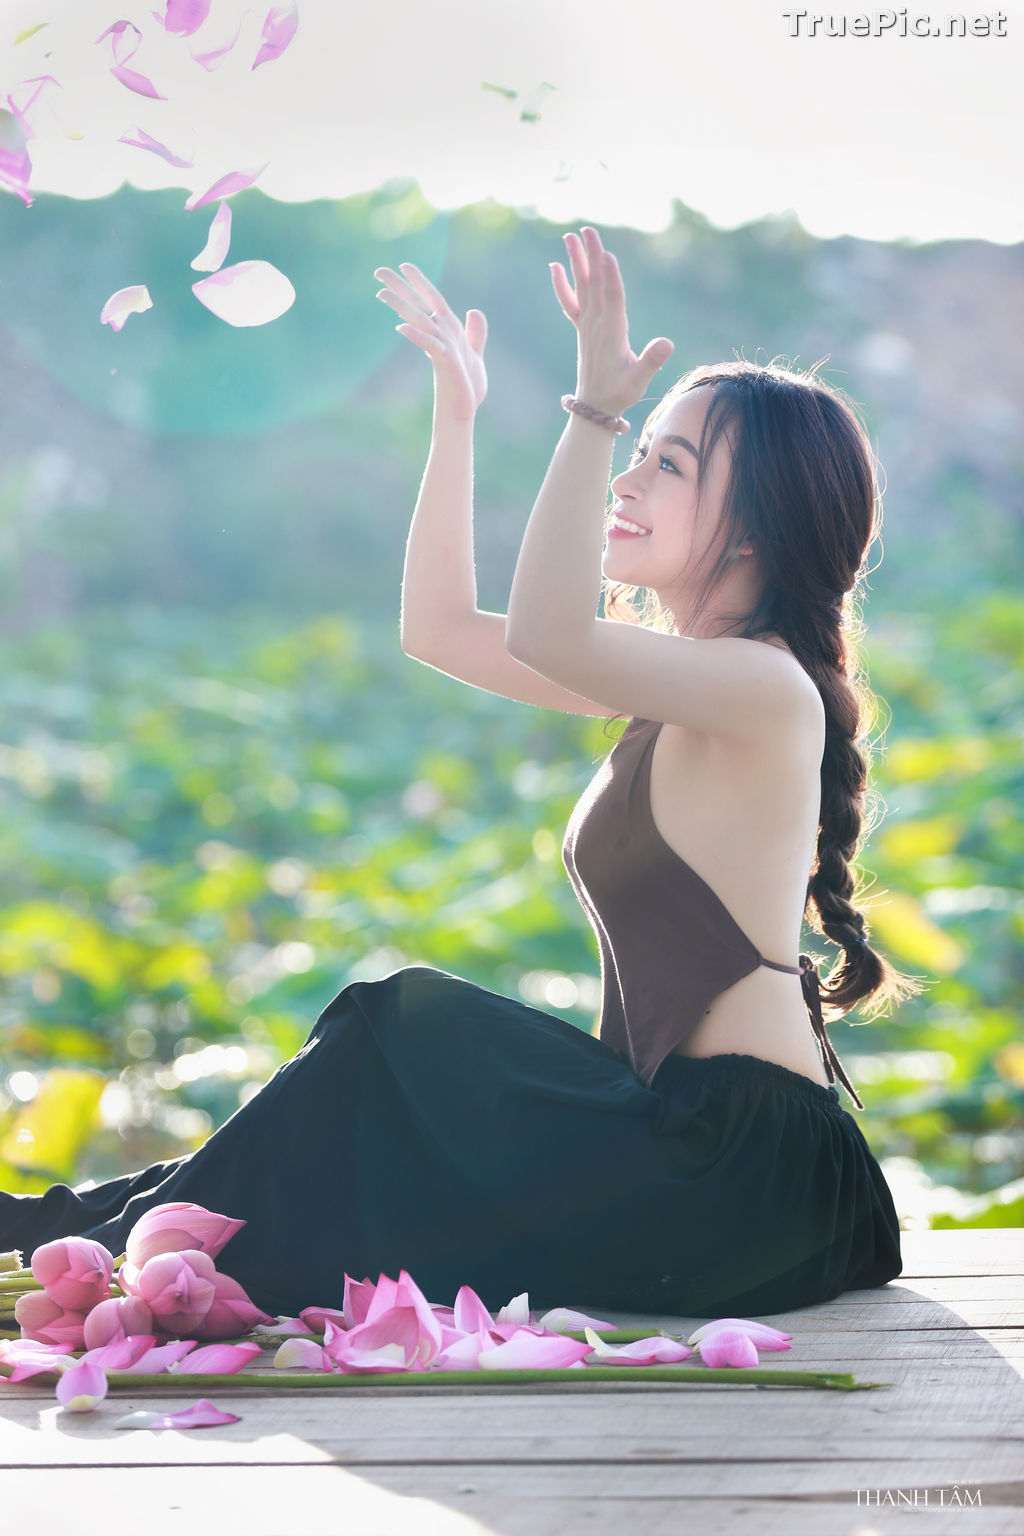 Image Vietnamese Model - Ha Minie - Beauty Girl and Lotus Flower #2 - TruePic.net - Picture-4